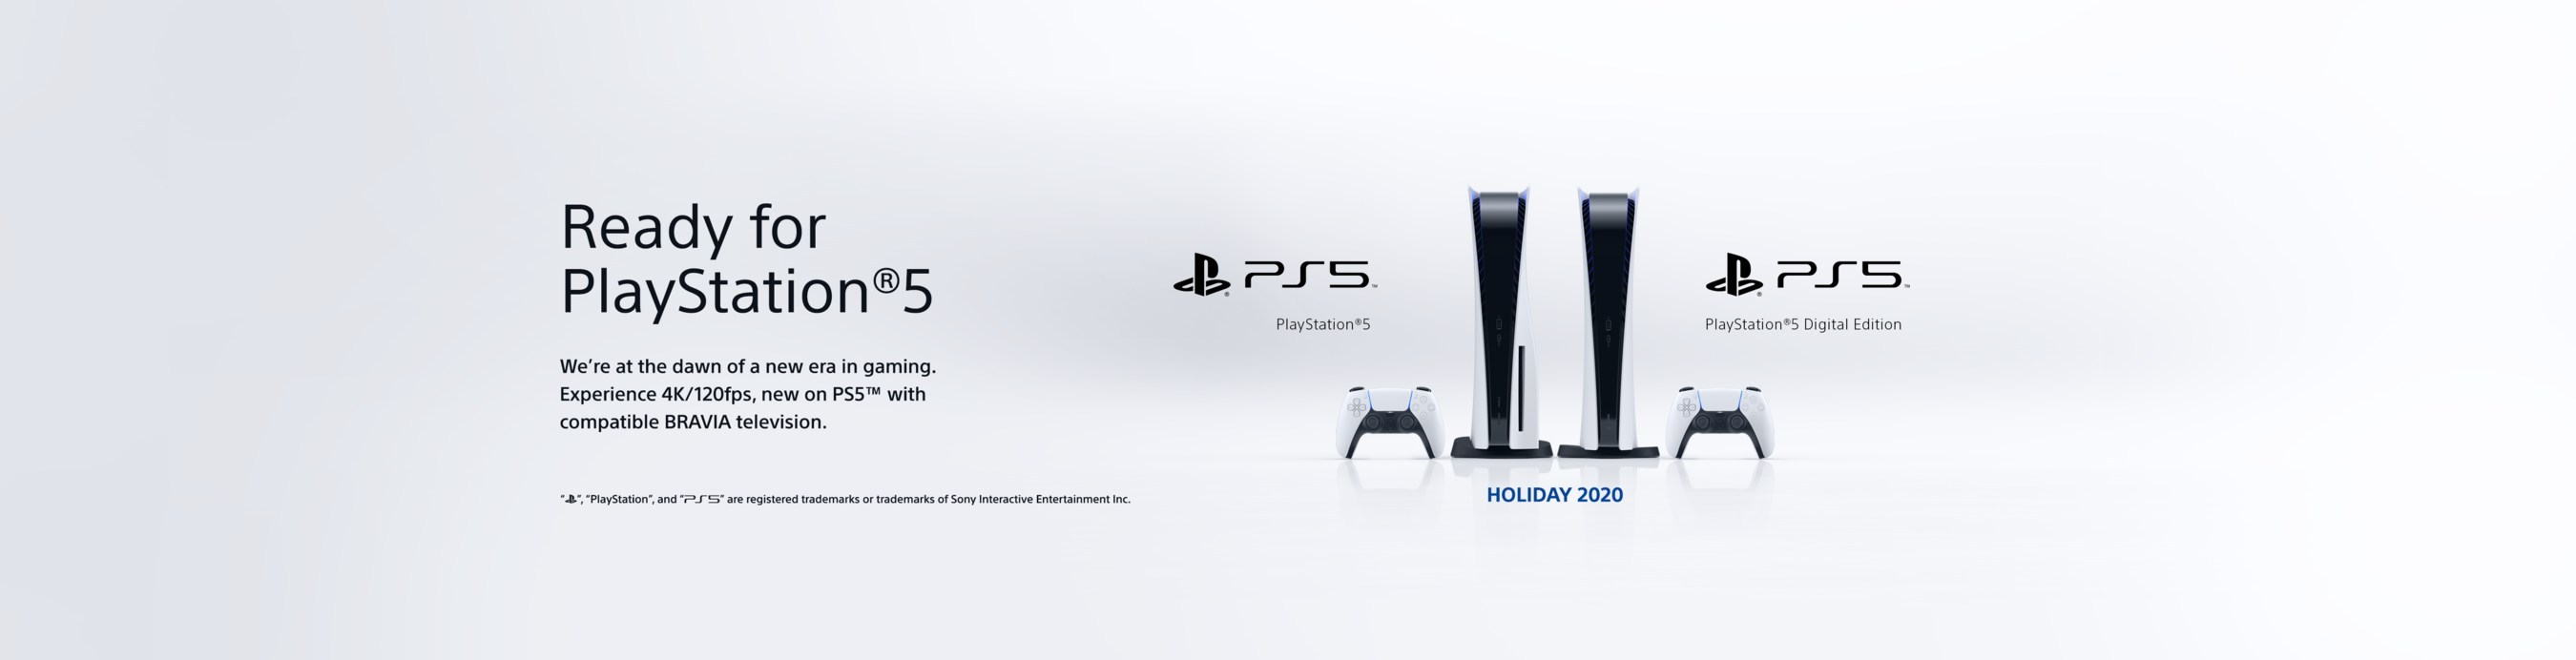 Sony Electronics Announces Ready For Playstation 5 For Current Tvs